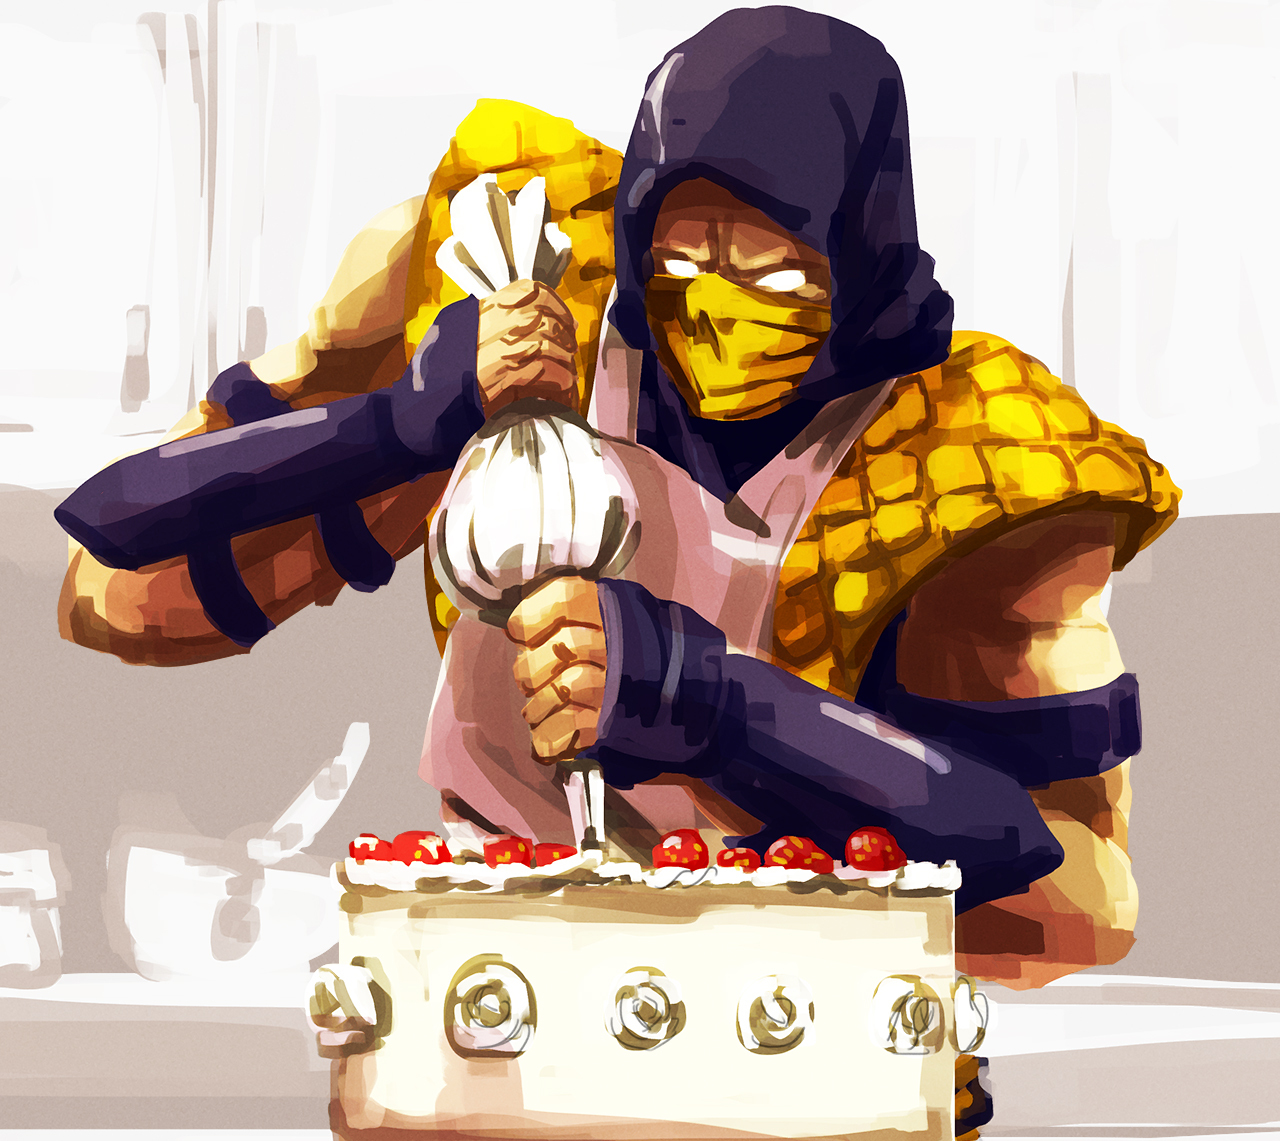 Warmup - Cooking with Scorpion